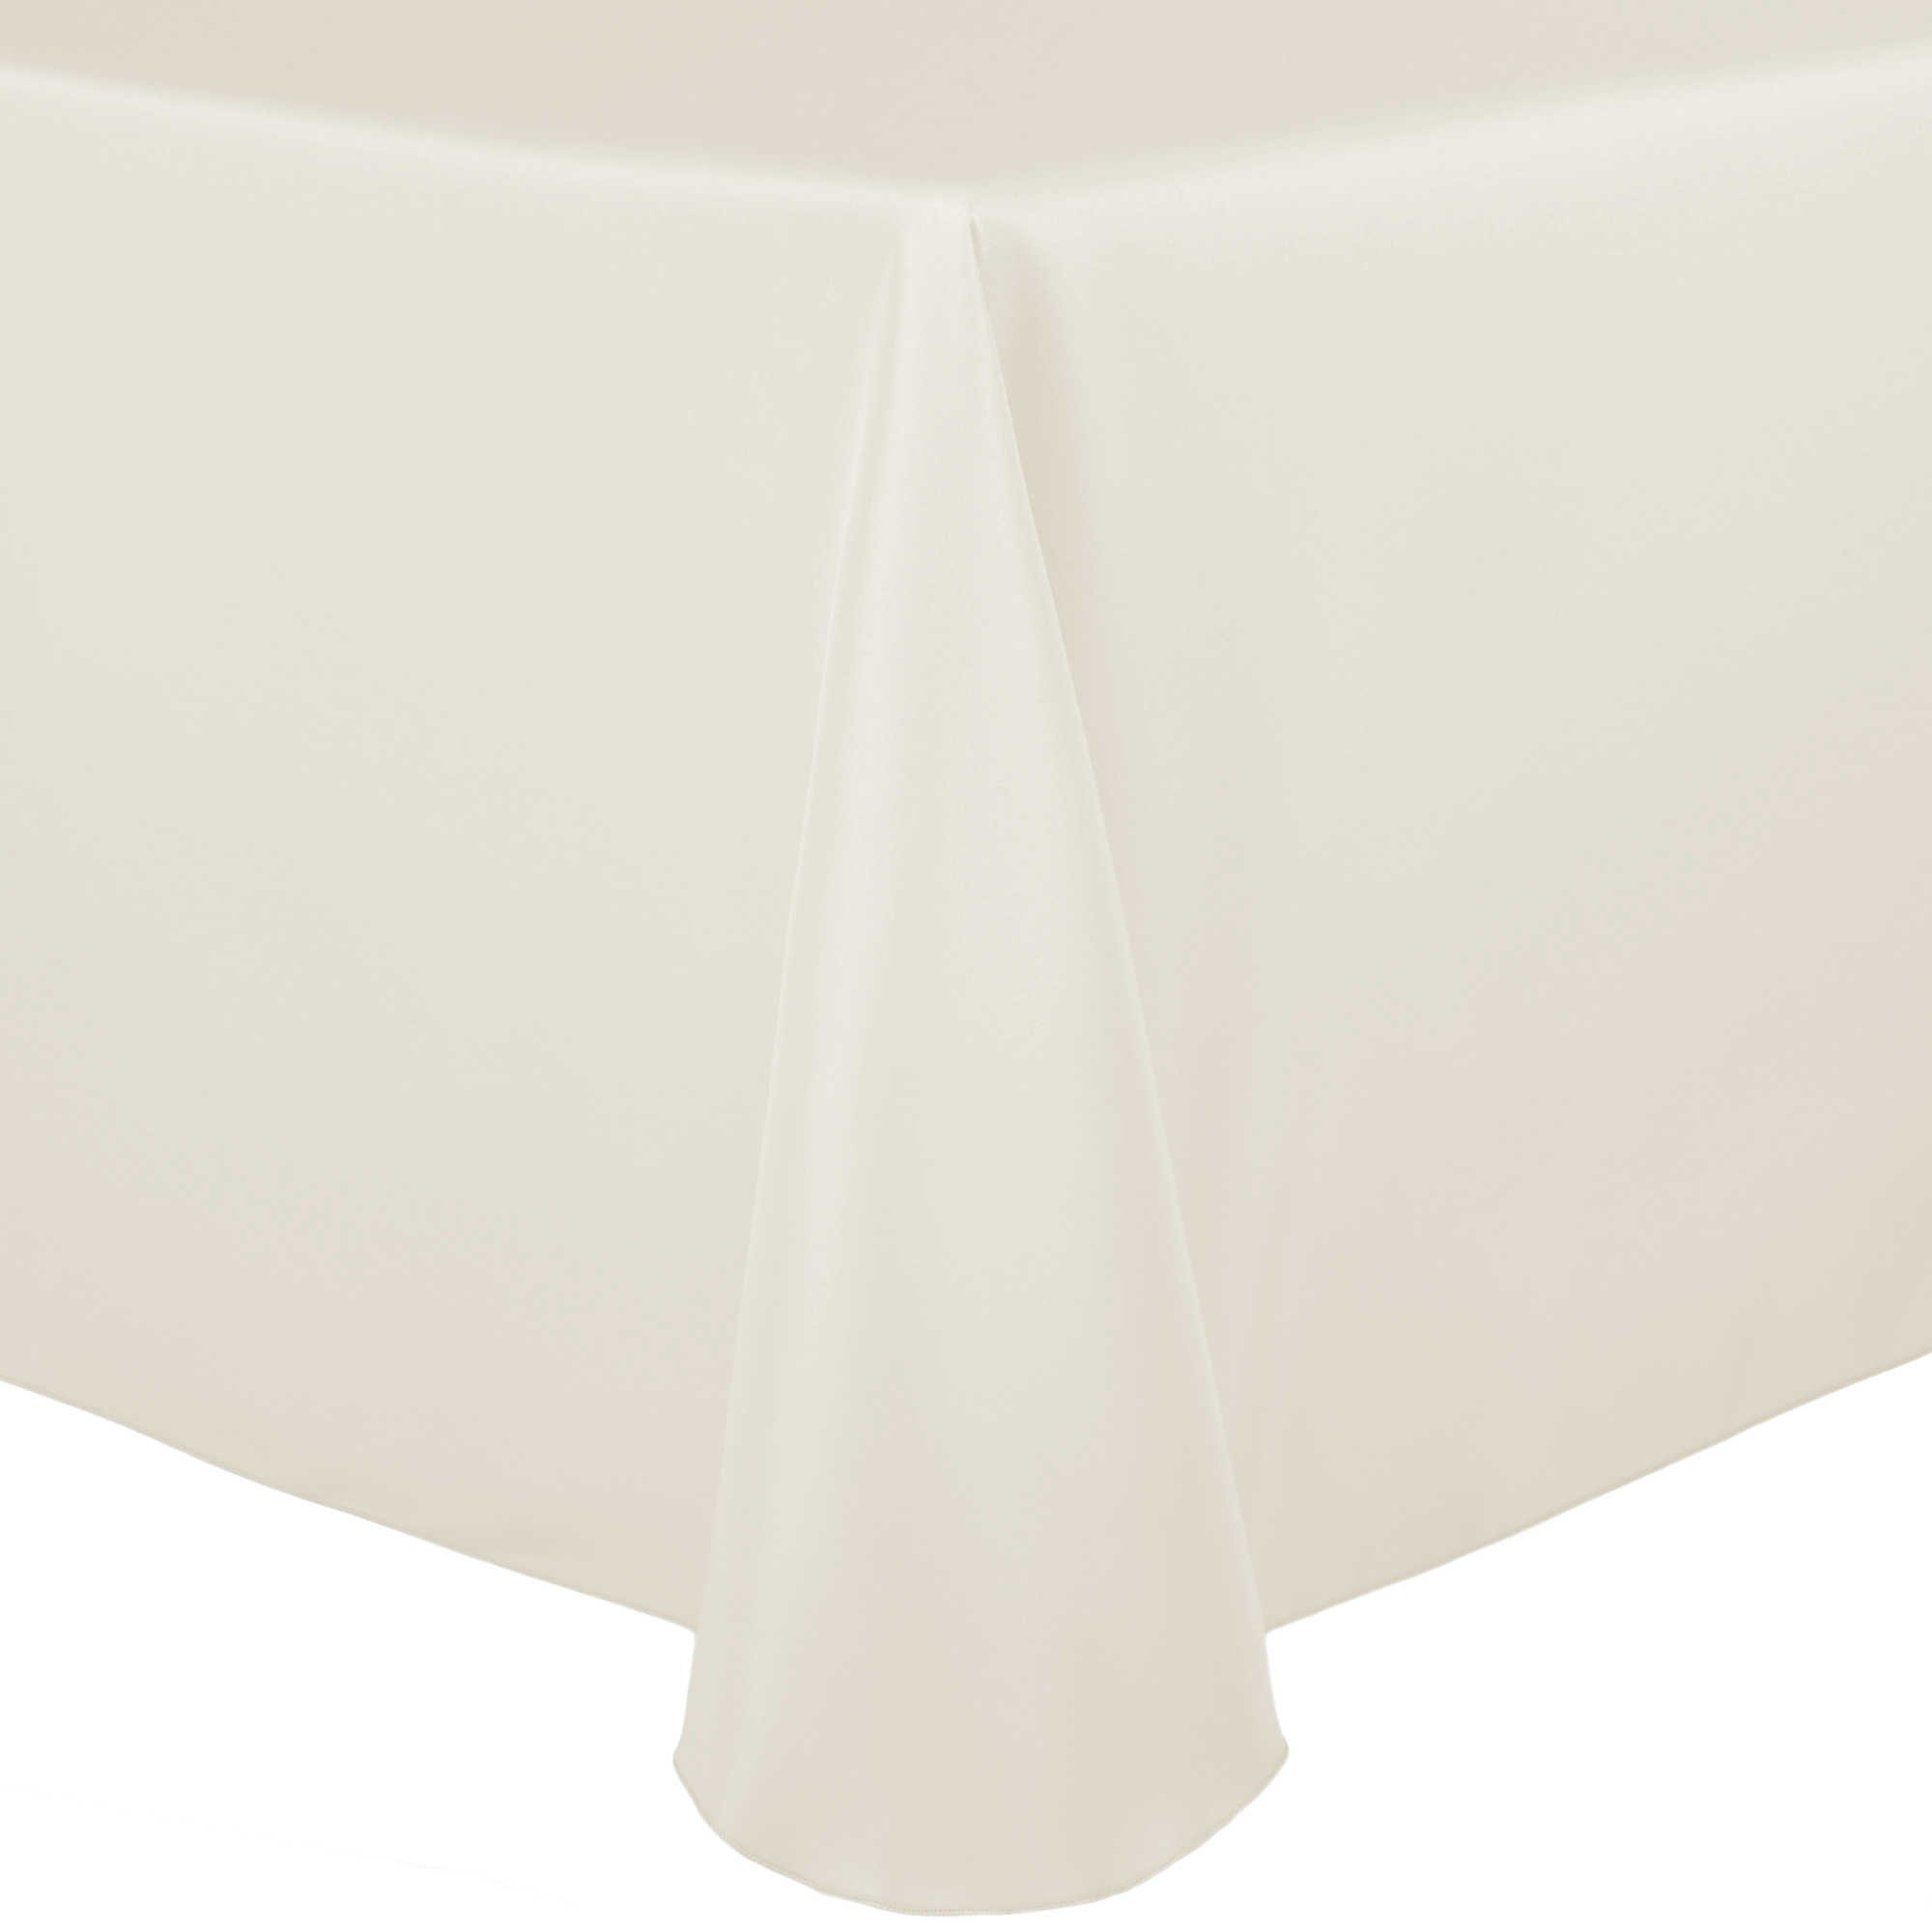 Ultimate Textile (5 Pack) 90 x 132-Inch Rectangular Polyester Linen Tablecloth with Rounded Corners - for Wedding, Restaurant or Banquet use, Ivory Cream by Ultimate Textile (Image #3)